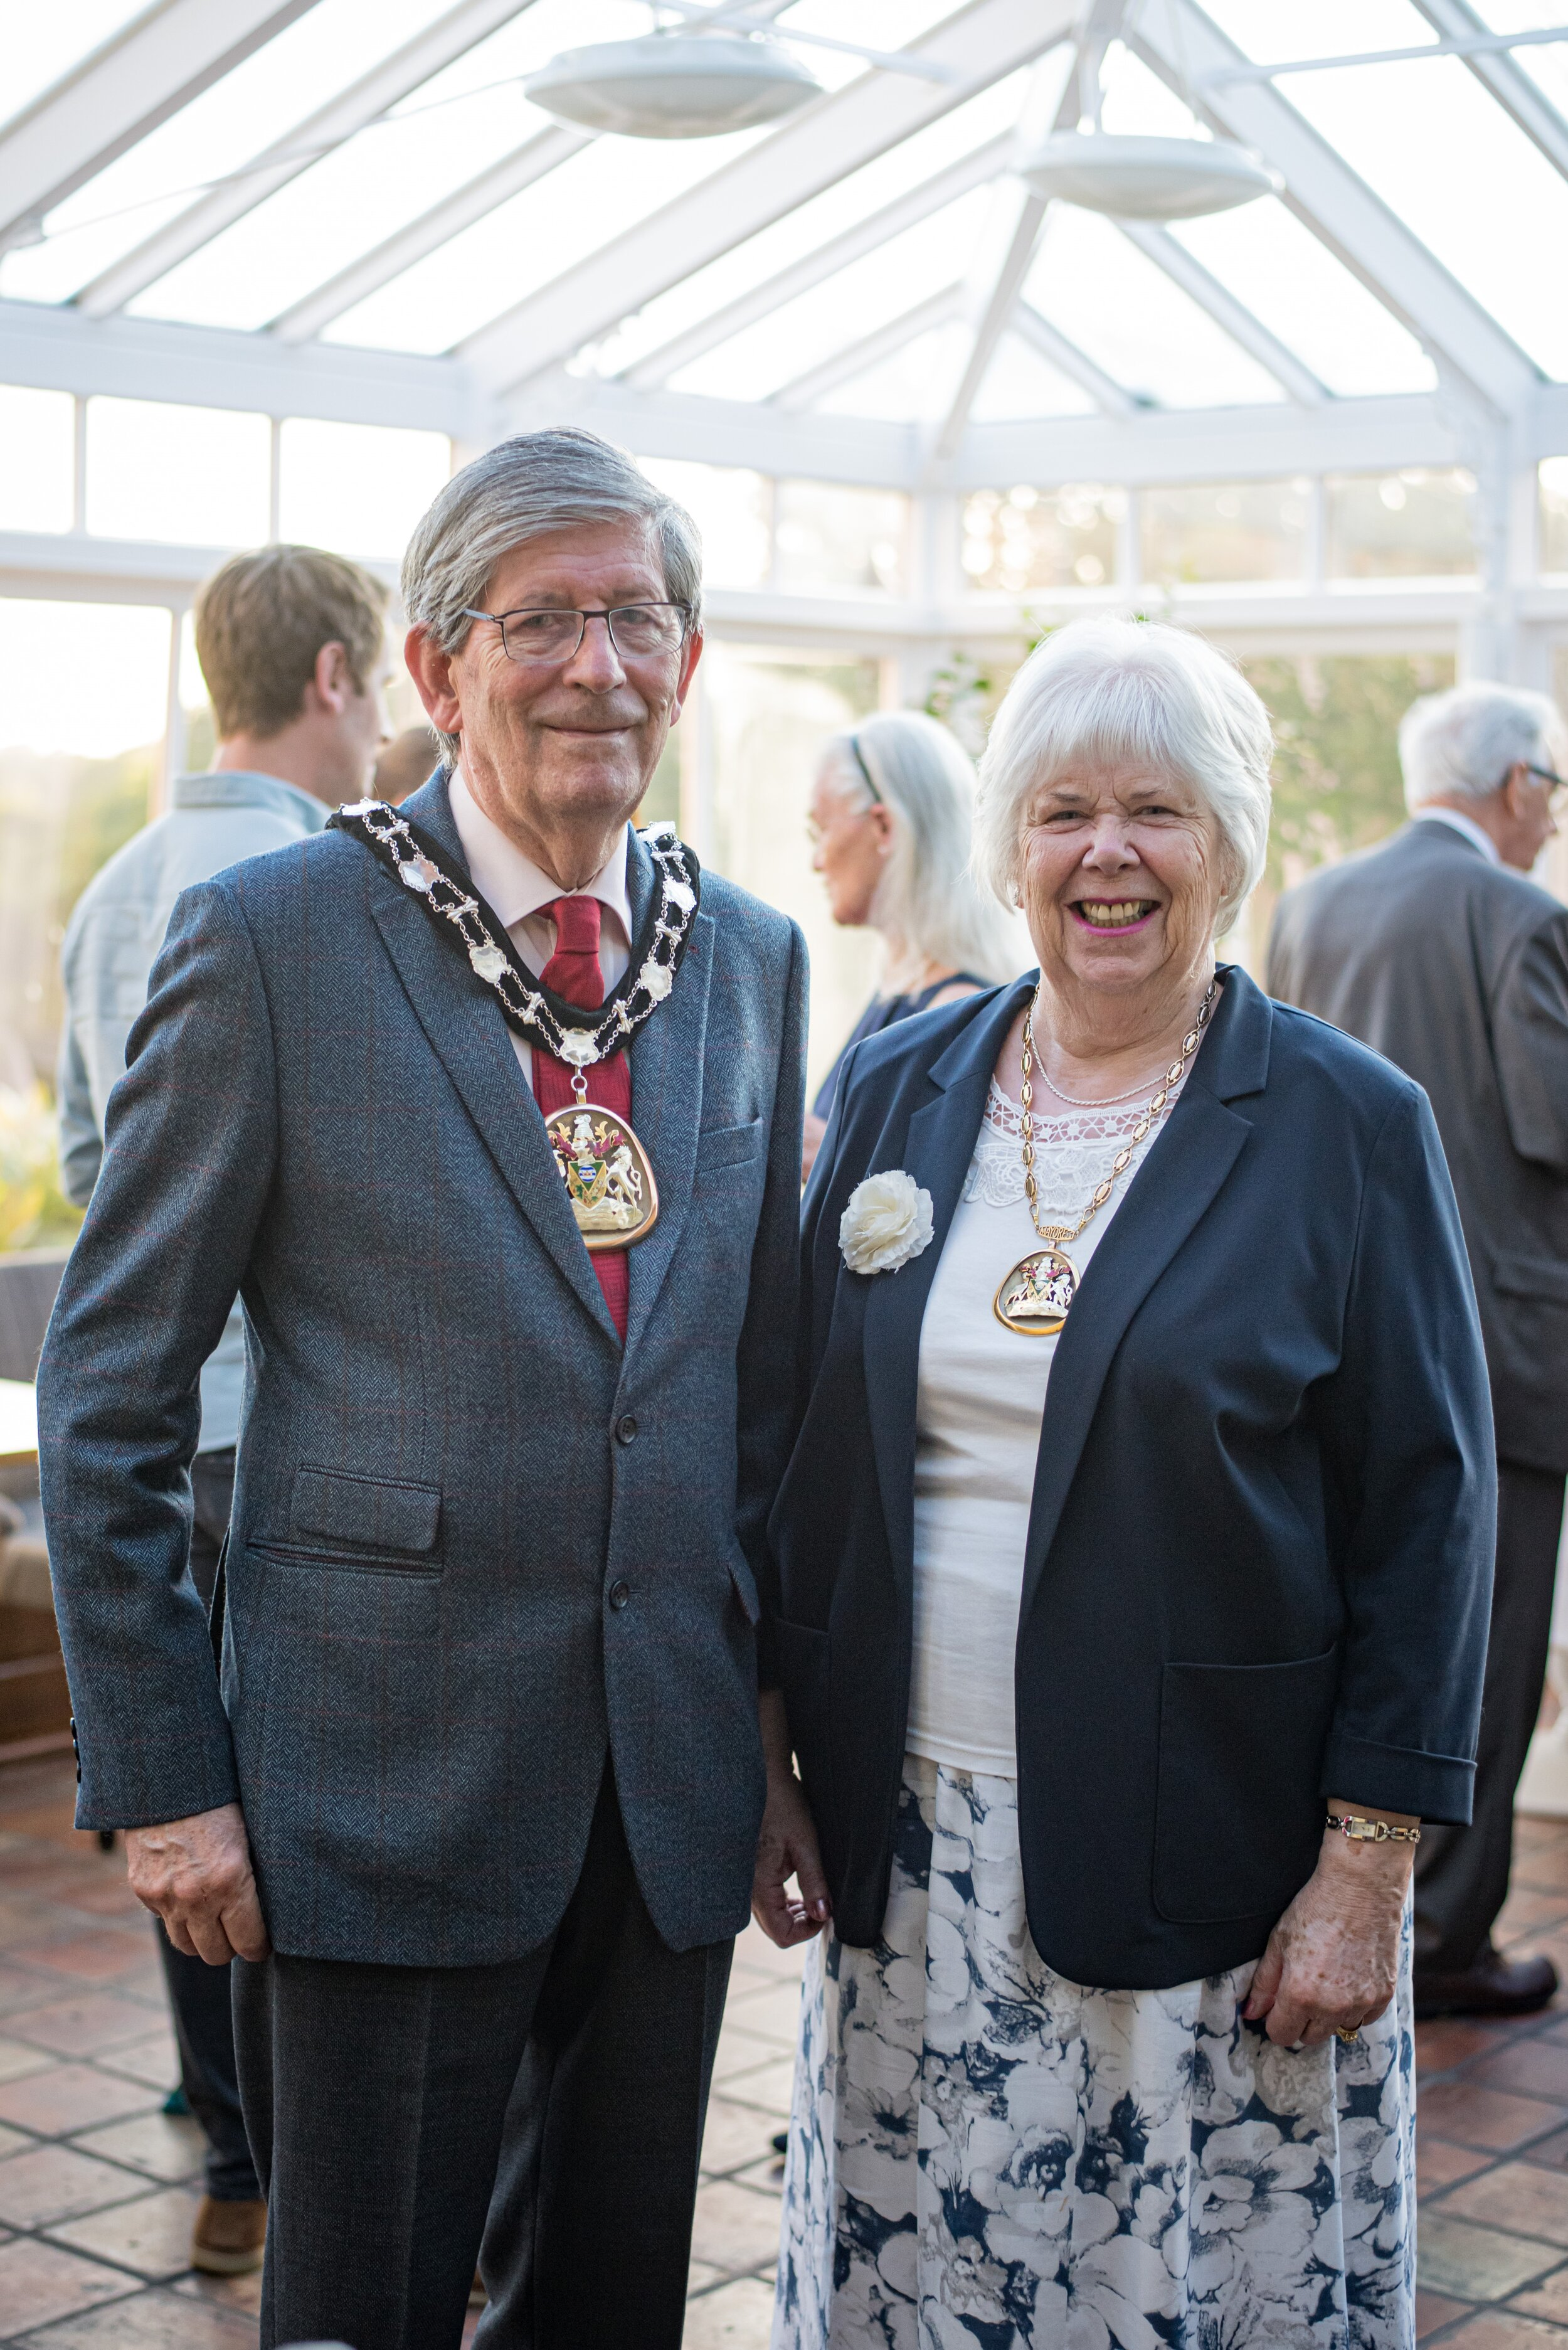 Mayor and Mayoress of Tunbridge Wells, Cllr James Scholes and his wife, Jane Scholes. Photo credit: Craig Matthews